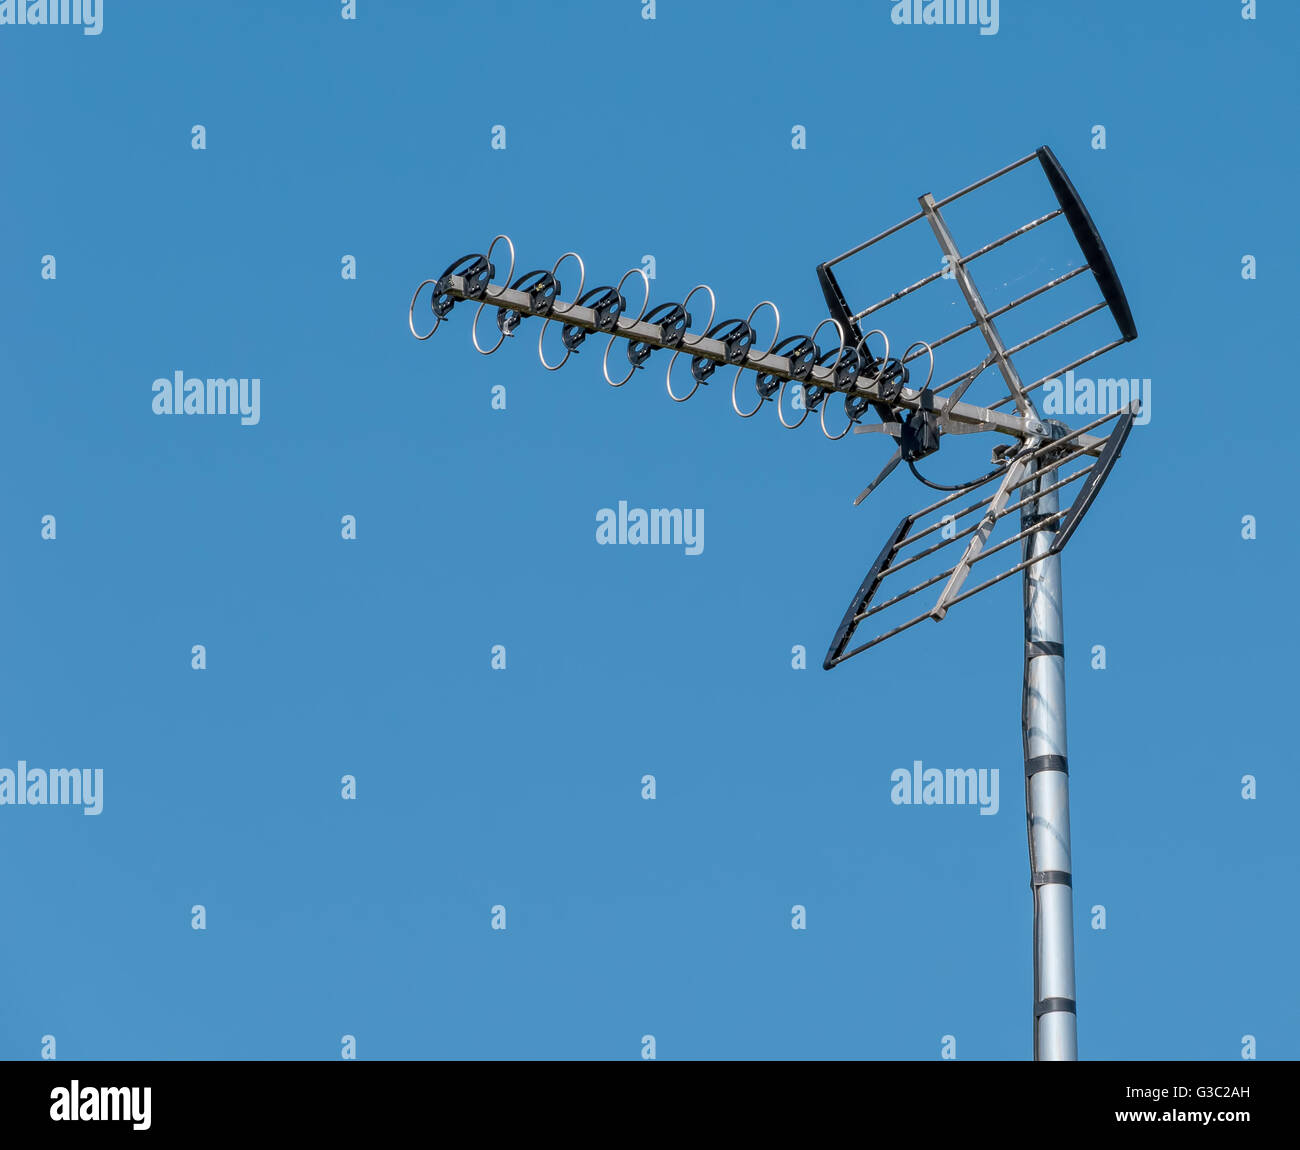 Outdoor TV Aerial mounted on a pole - Stock Image